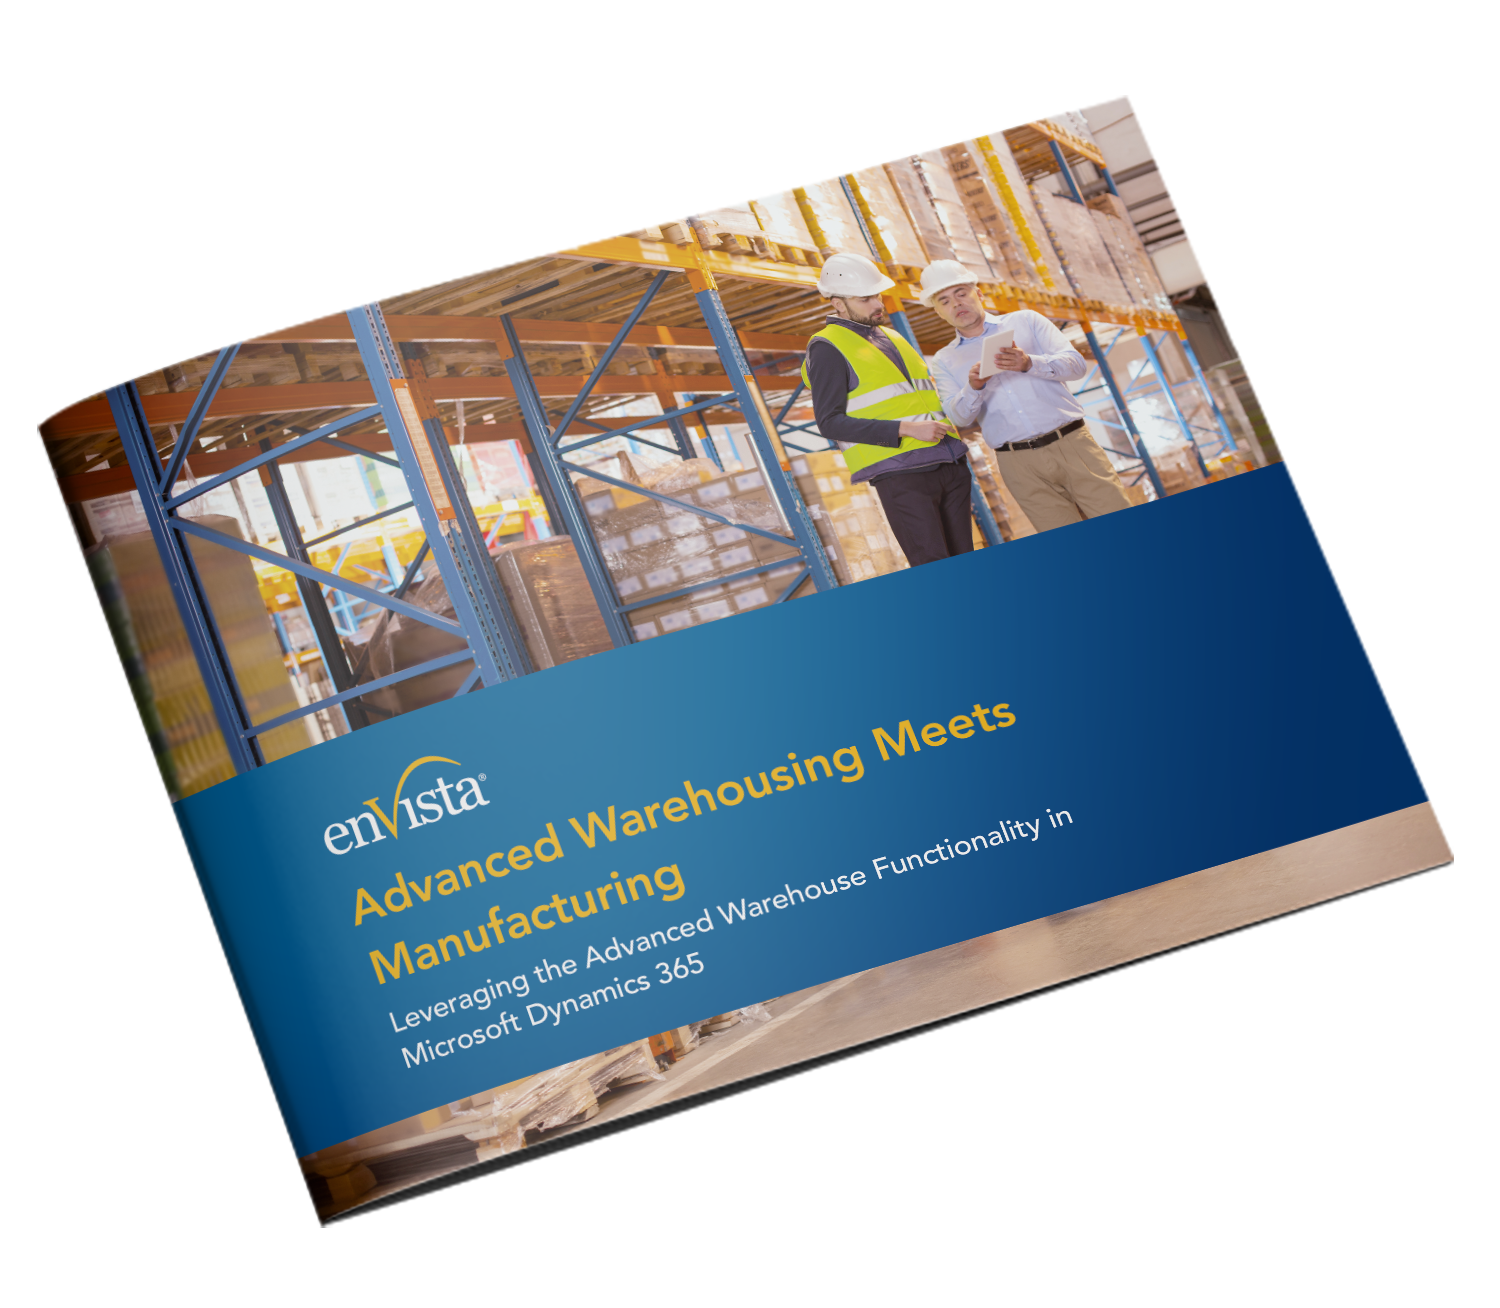 Advanced Warehouse Meets Manufacturing White Paper Cover